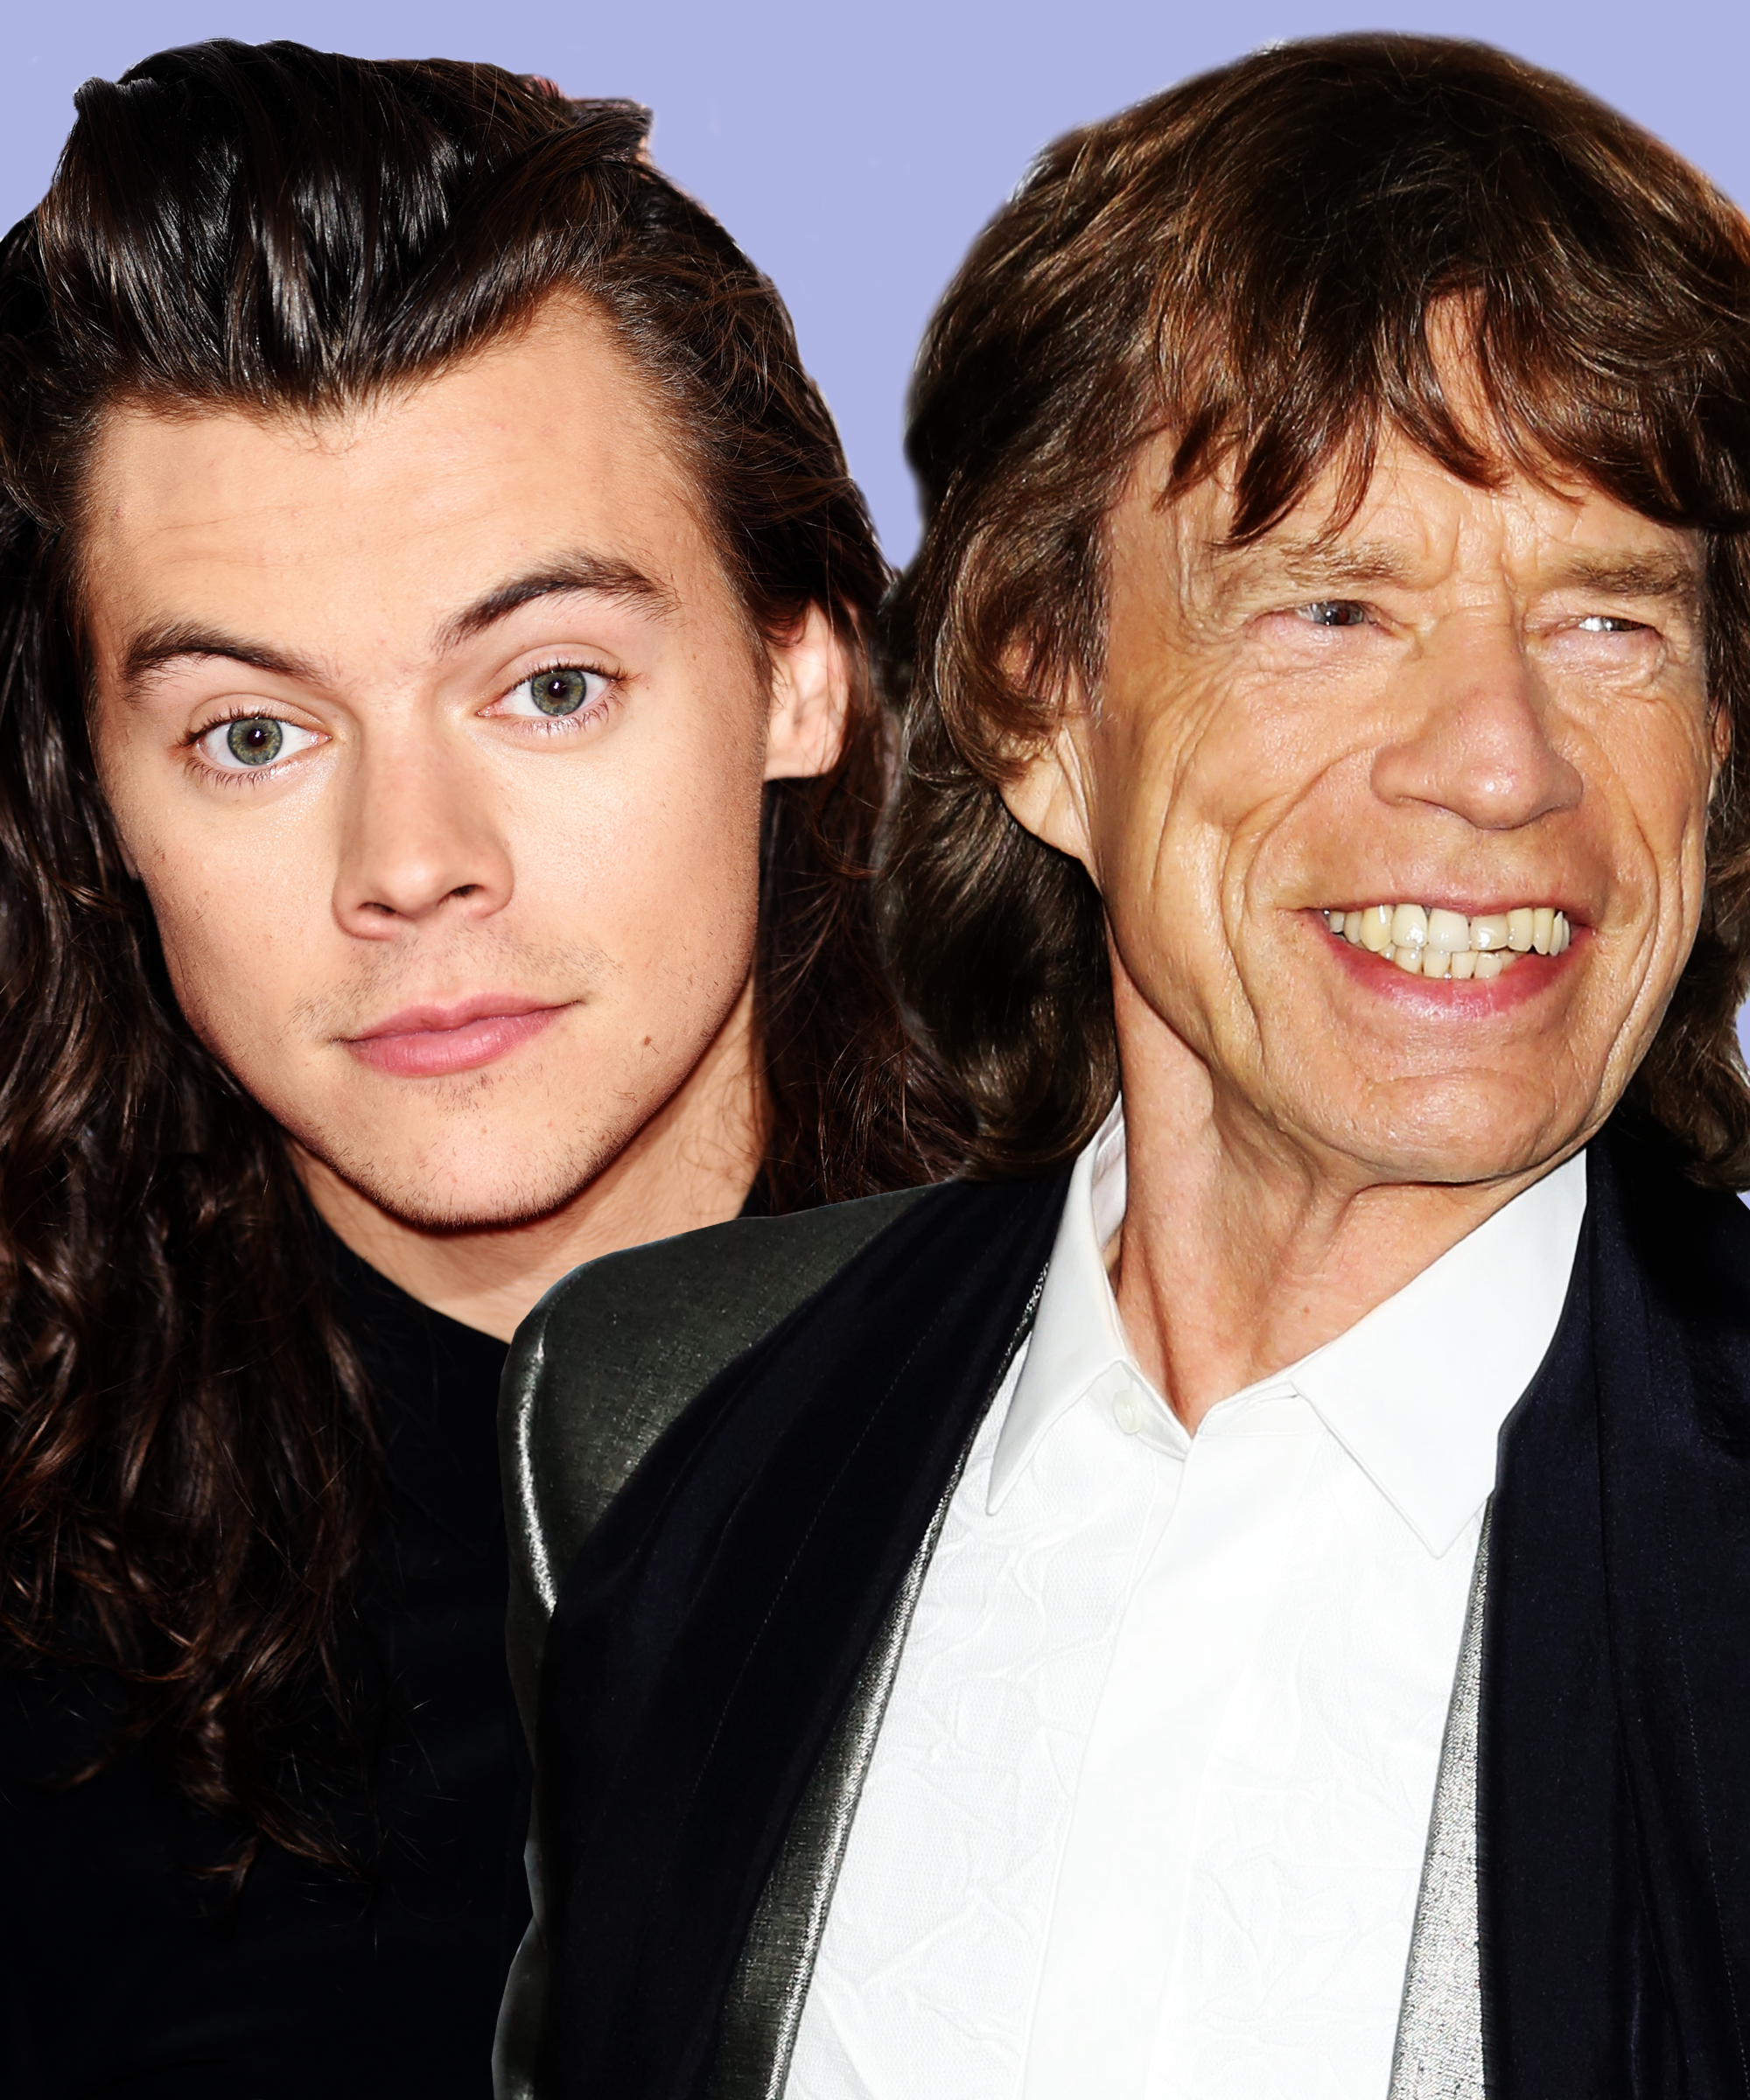 Harry Styles Short Hairstyle Mick Jagger Rolling Stone